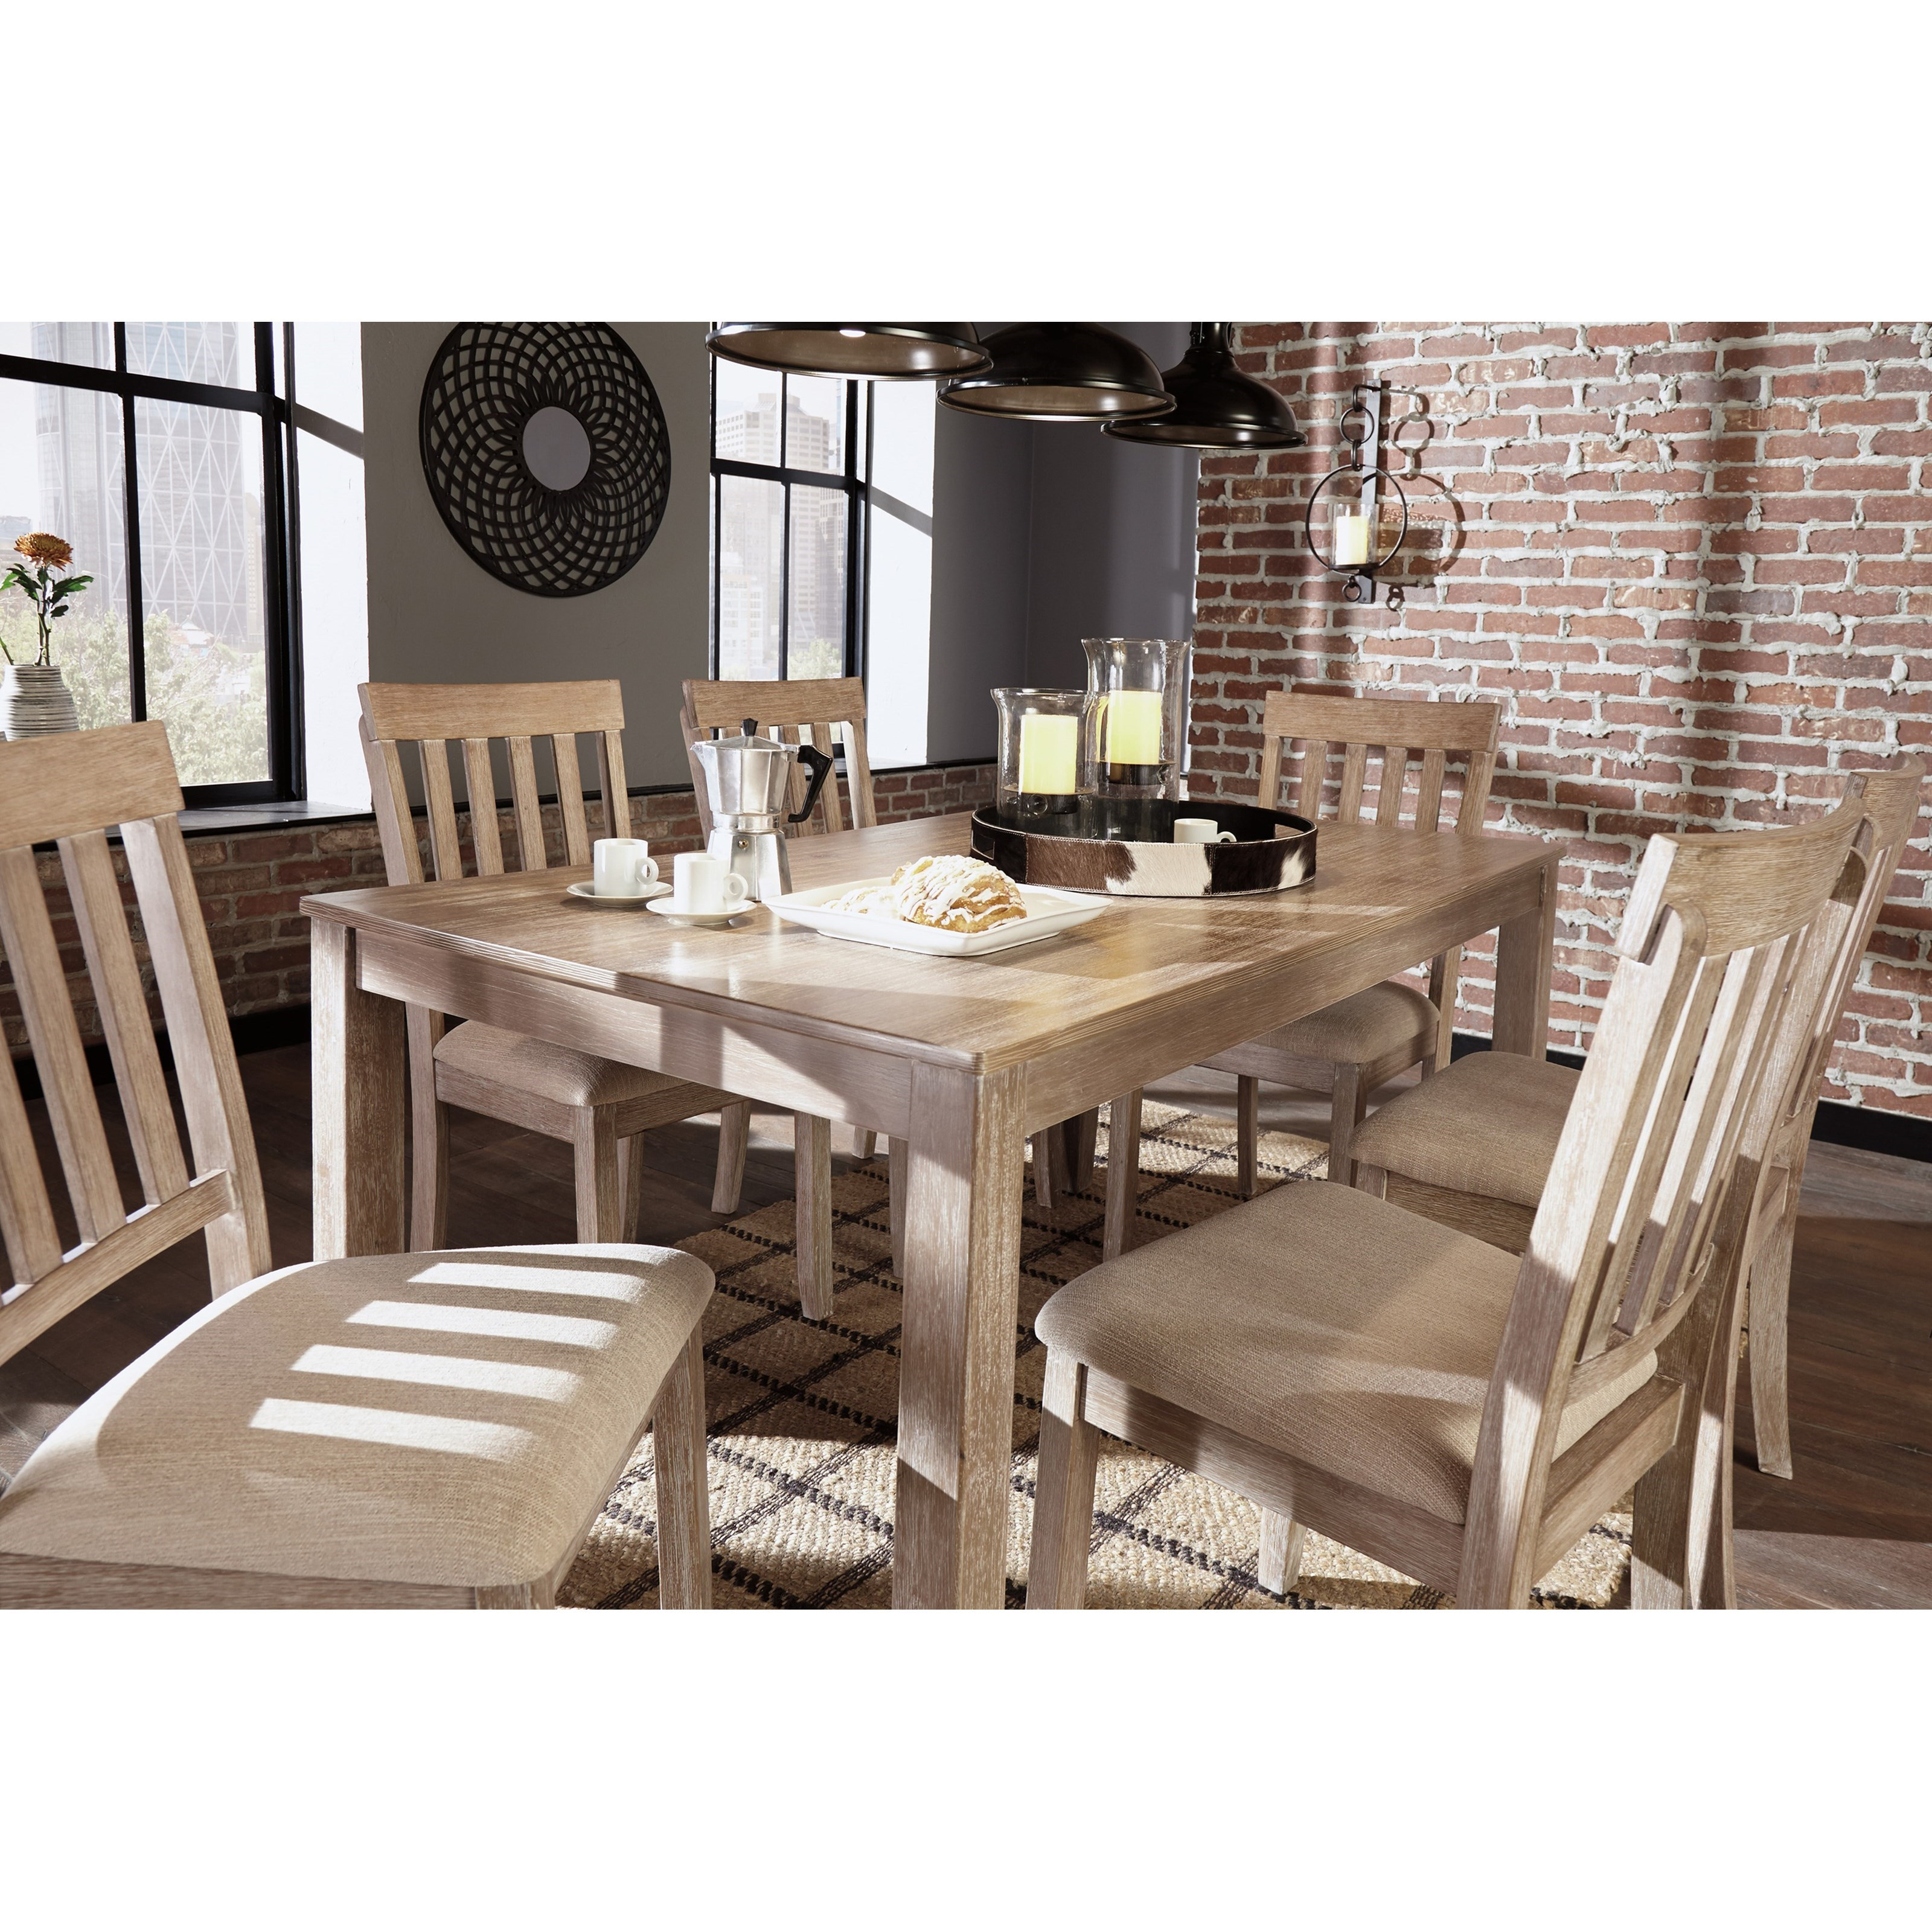 benchcraft mattilone d484 425 casual dining room table set with 6 chairs john v schultz. Black Bedroom Furniture Sets. Home Design Ideas